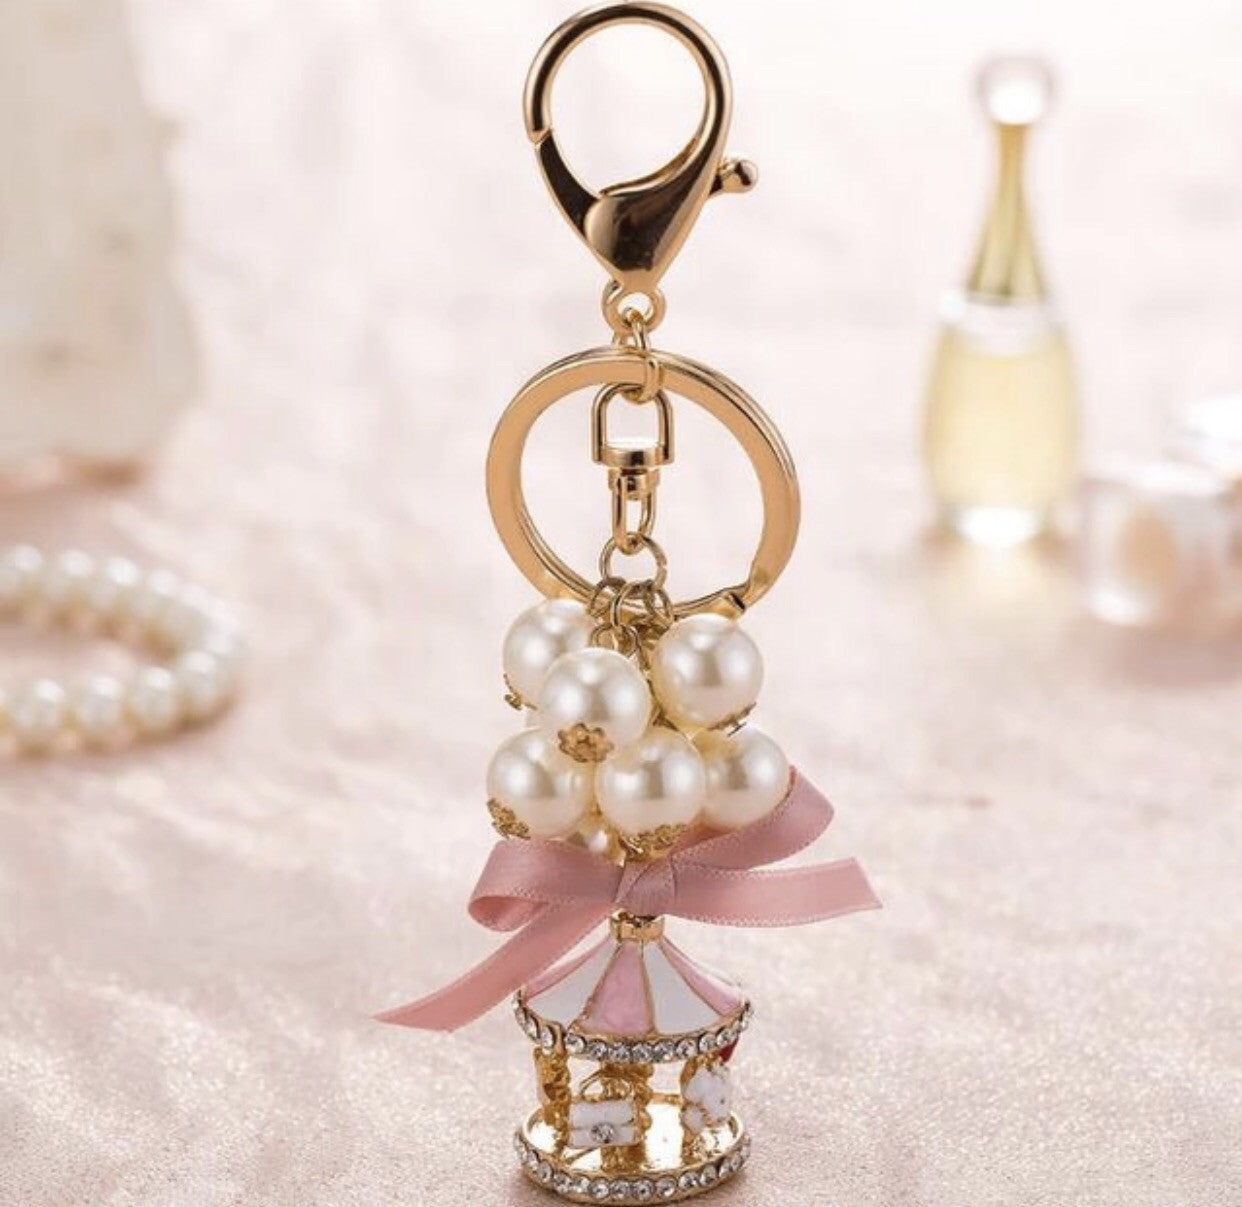 Fancy Carousel bag charm keychain